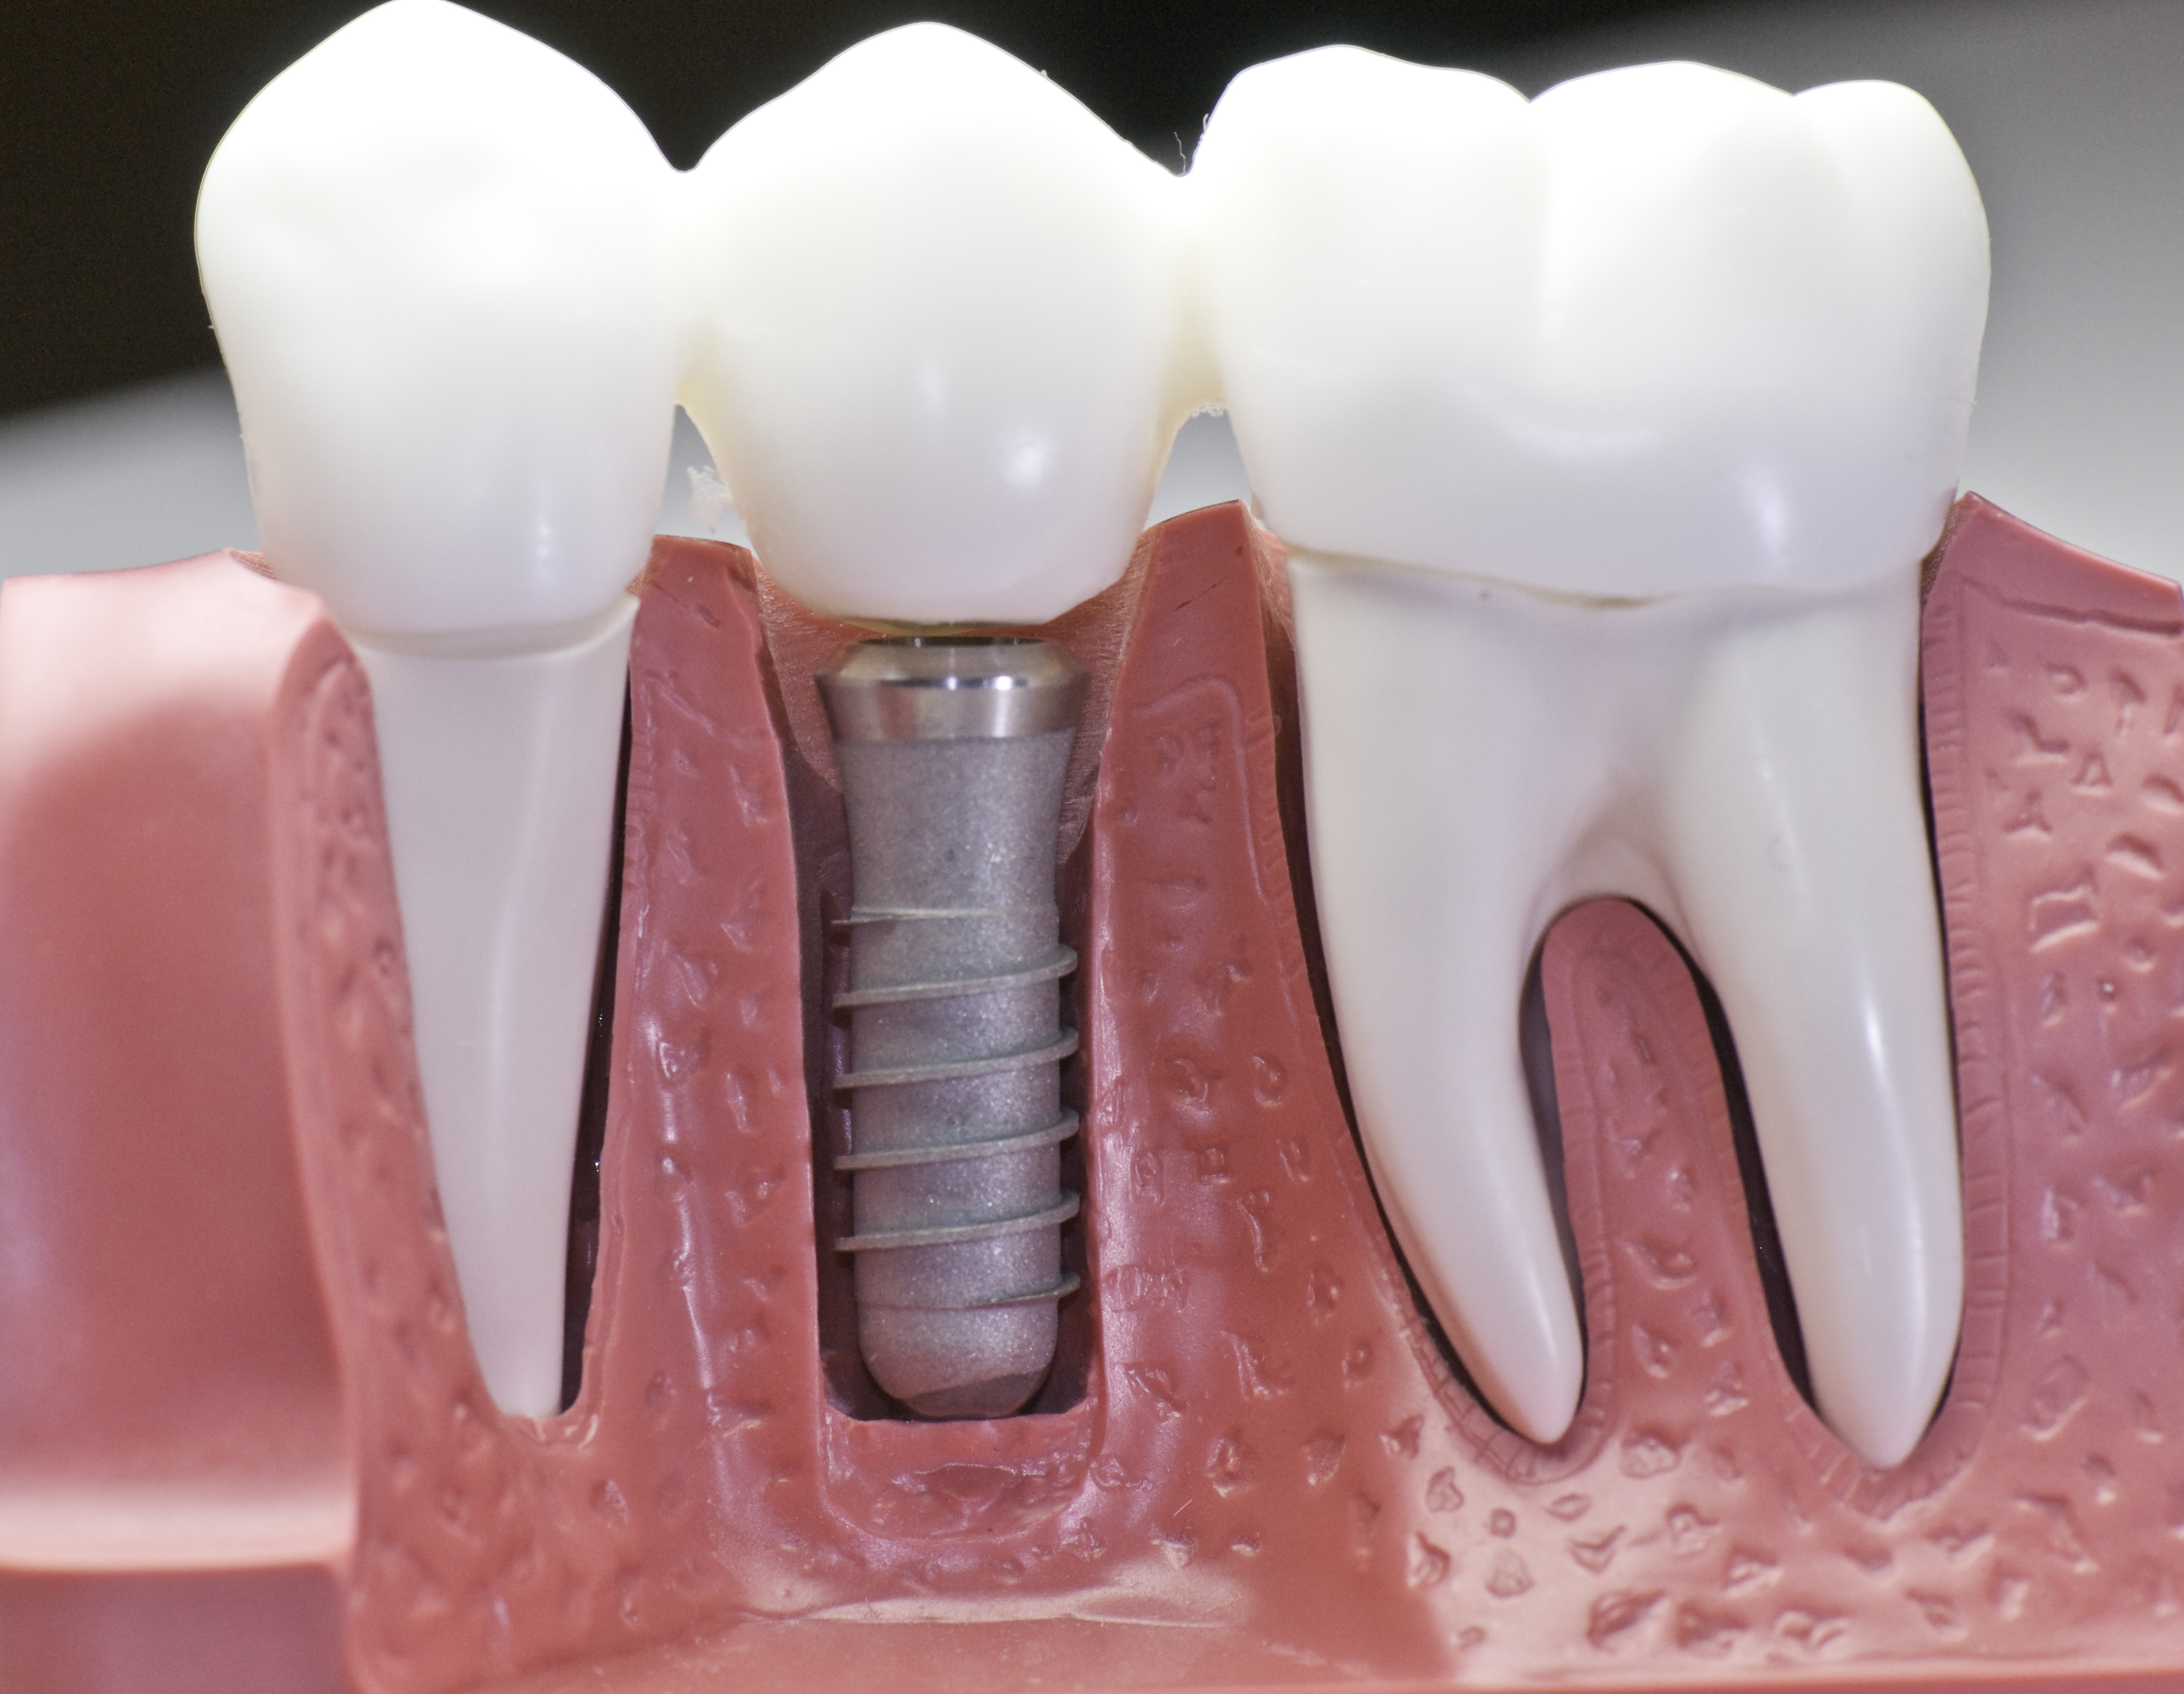 We are the experts of dental implants in Canberra.